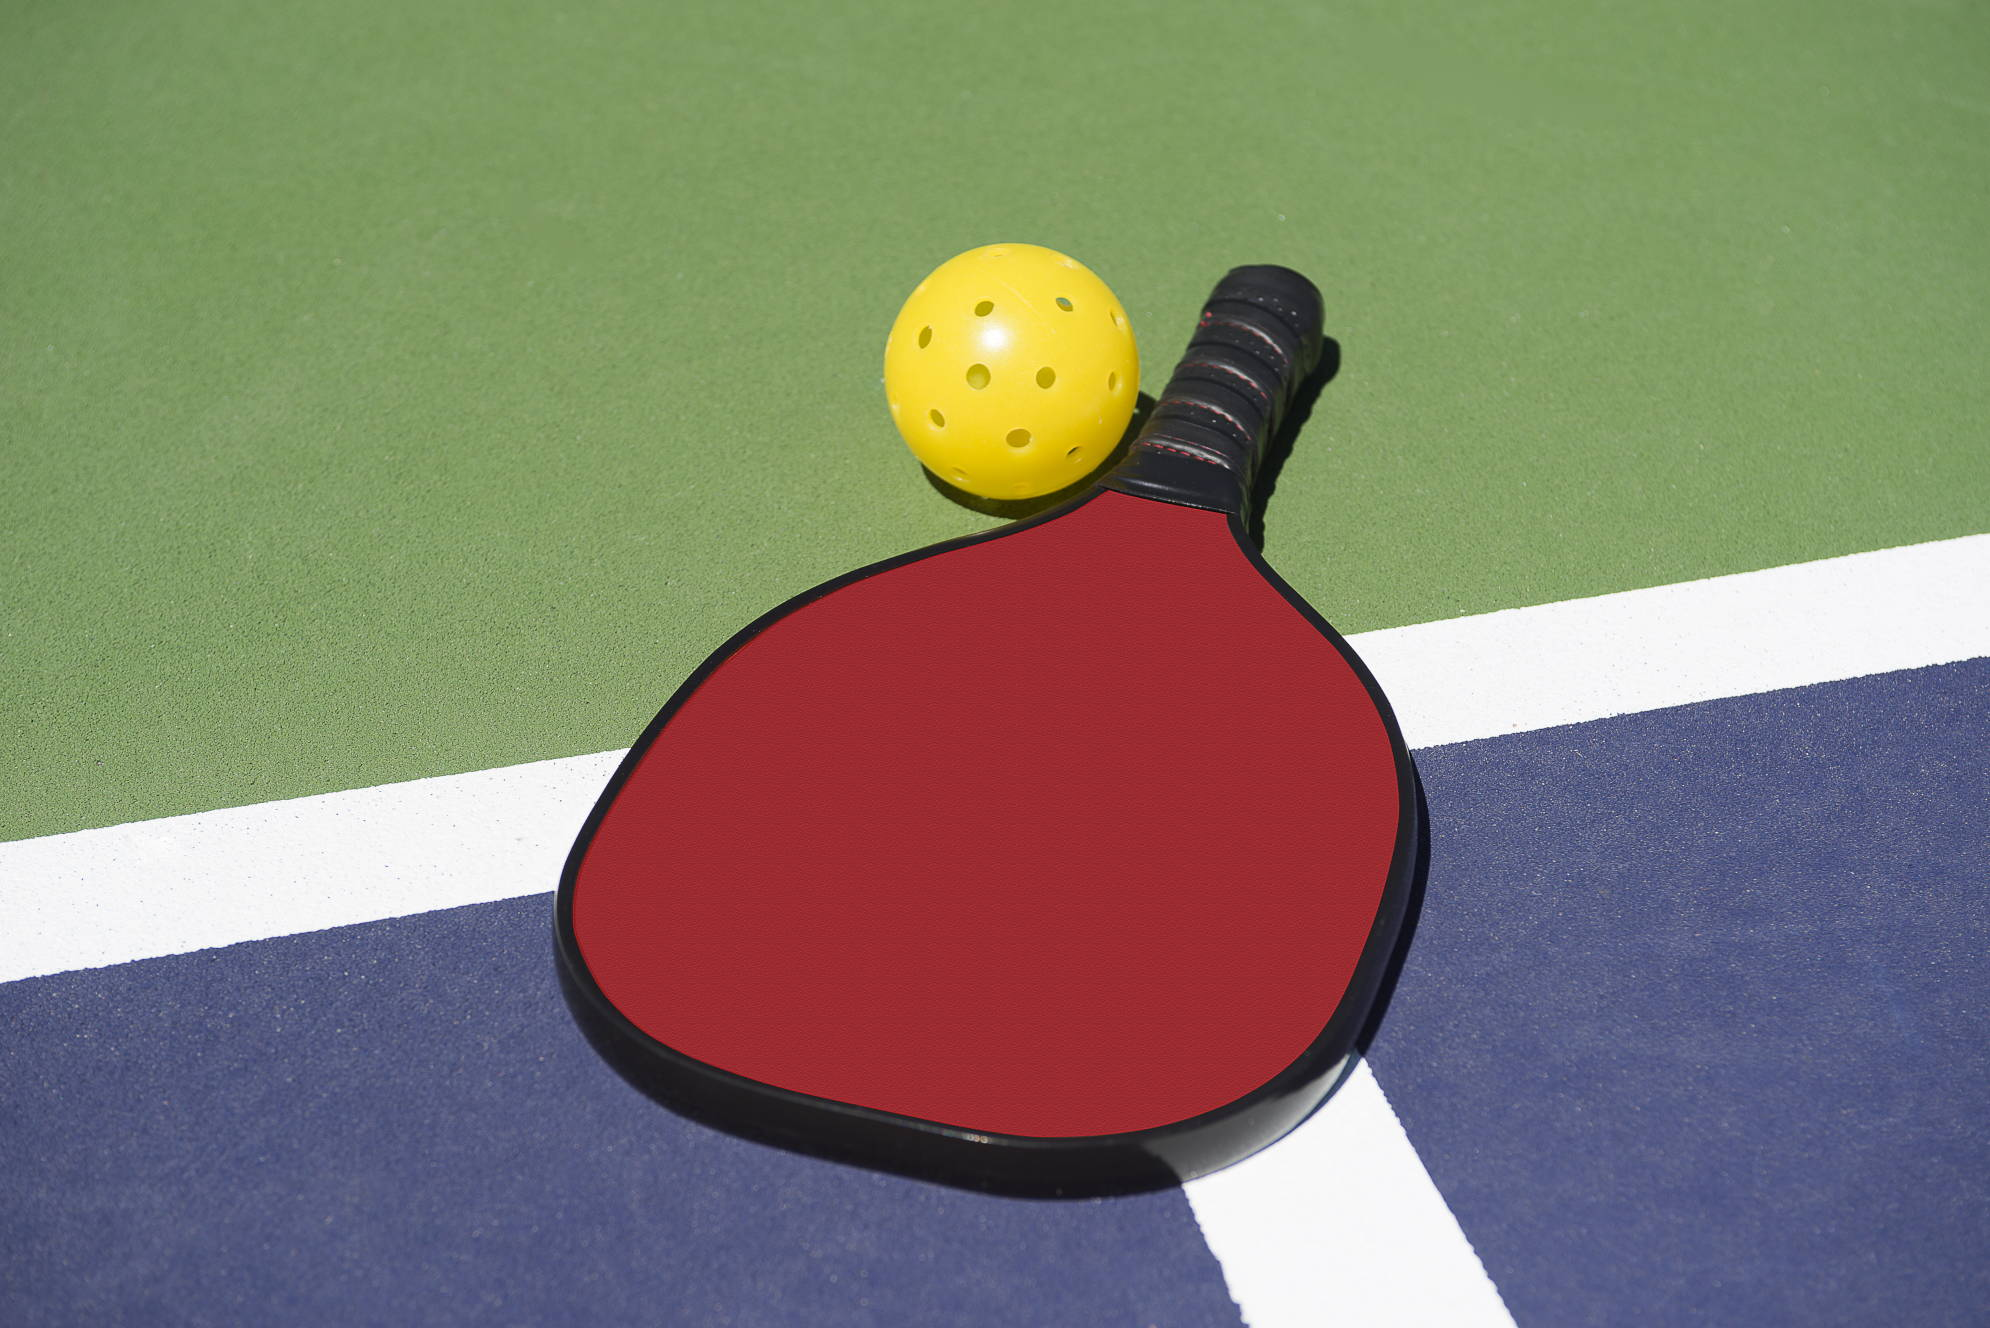 pickleball and pickleball paddle on court